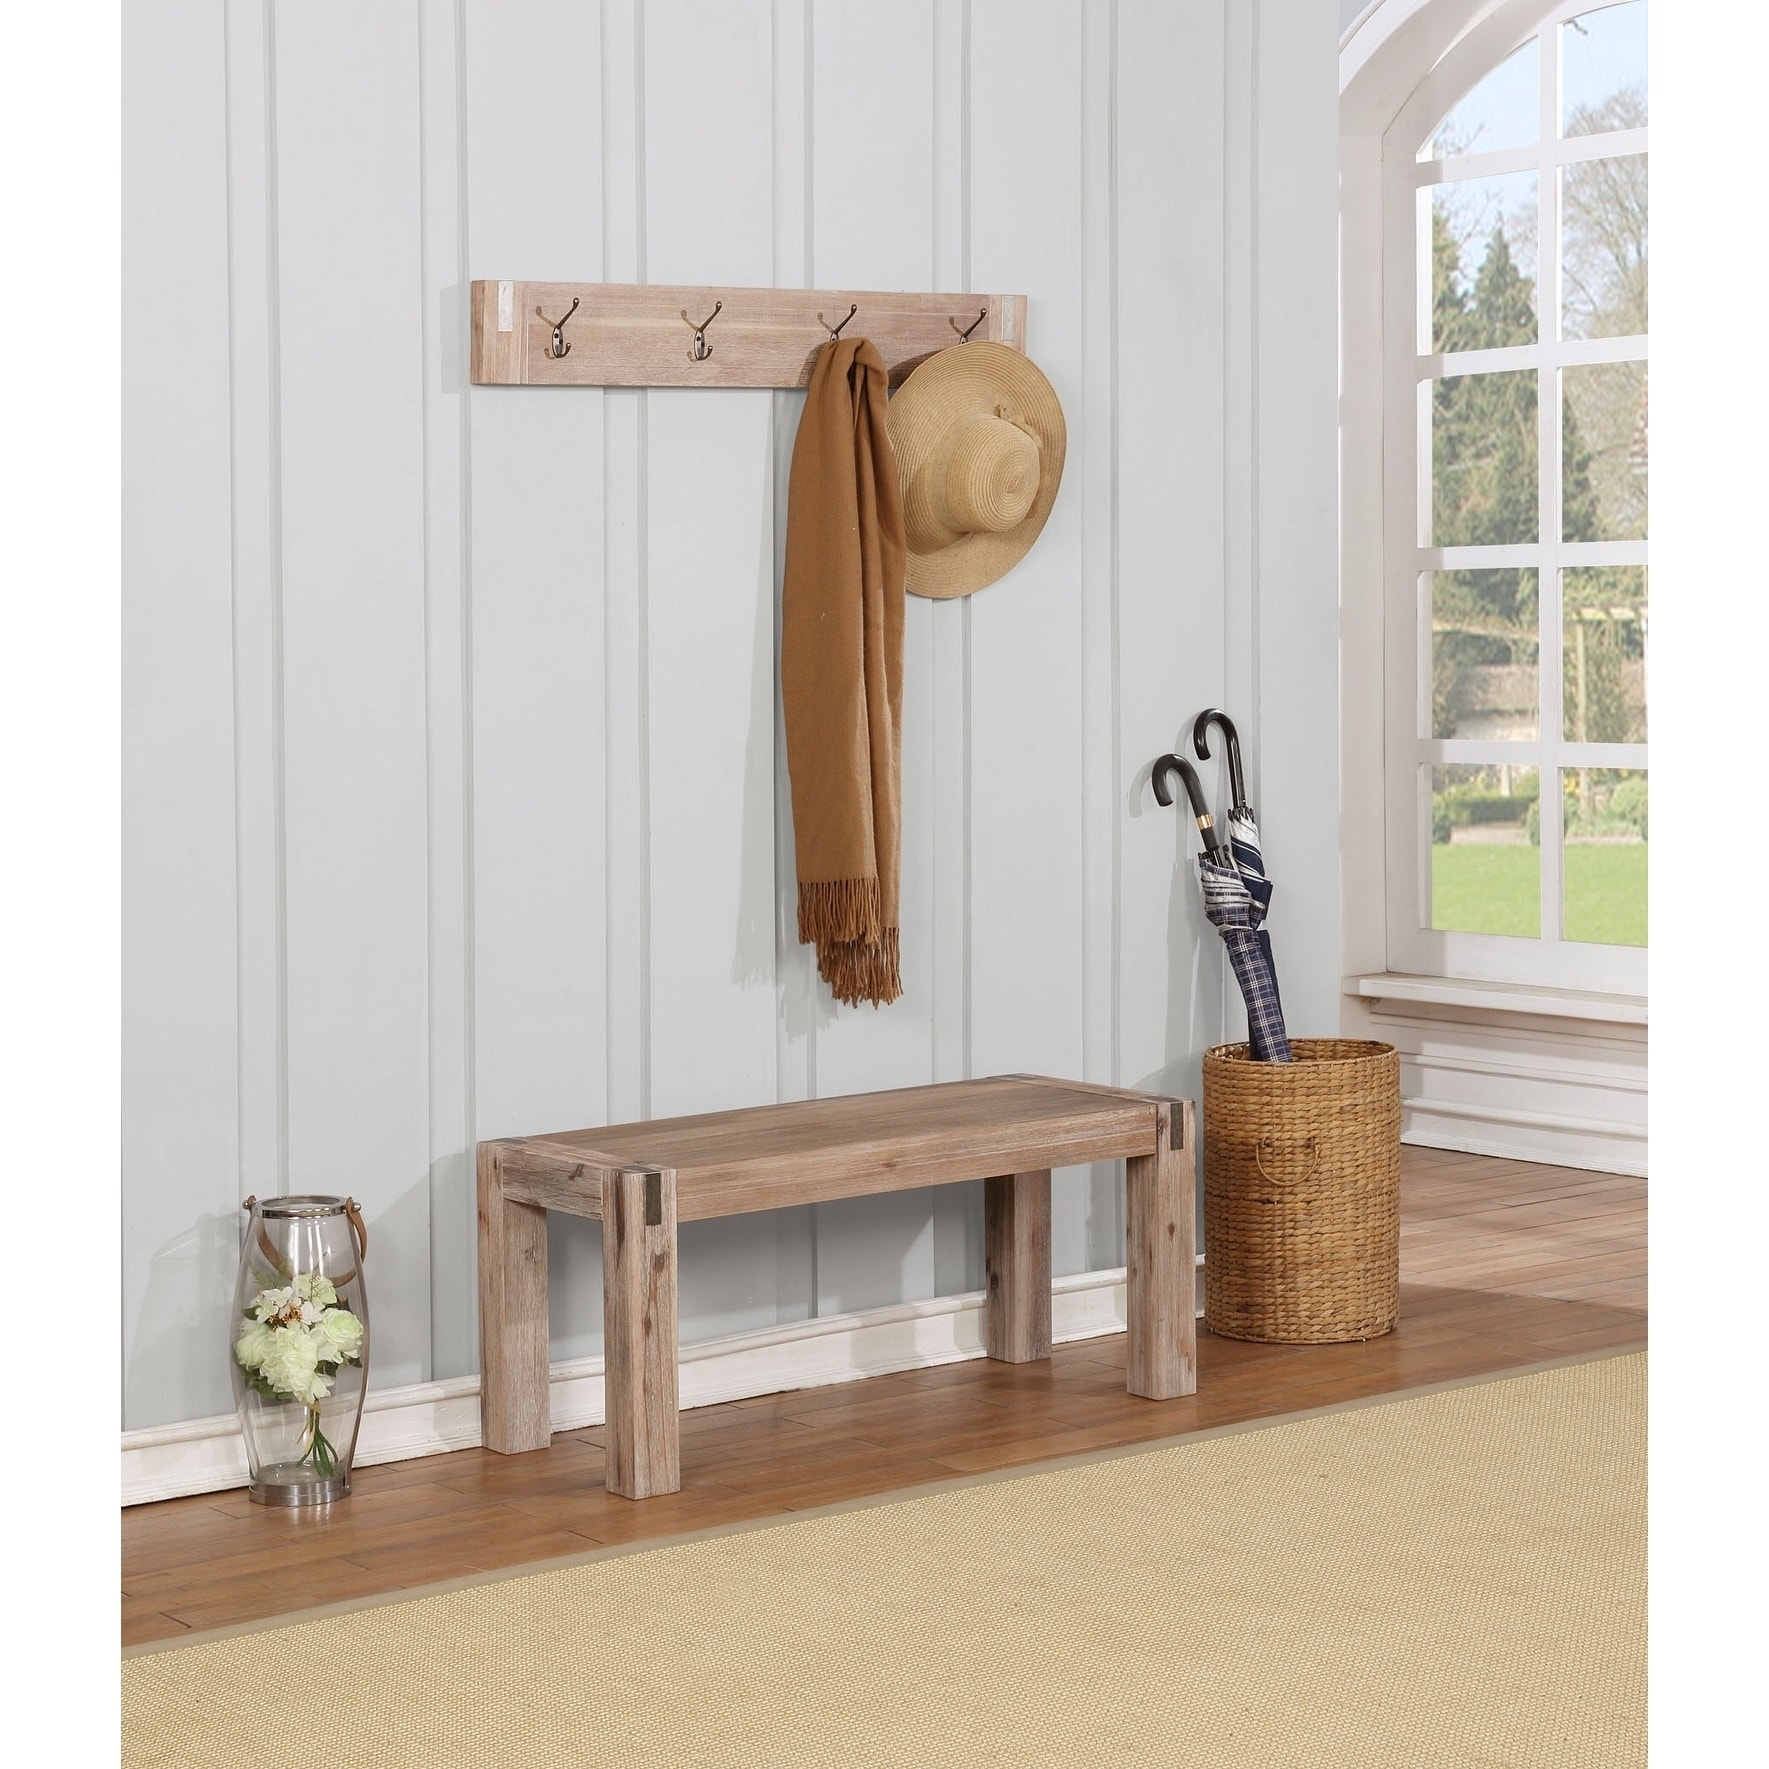 Woodstock Brushed Driftwood Acacia Wood with Metal Coat Hook and Bench Set